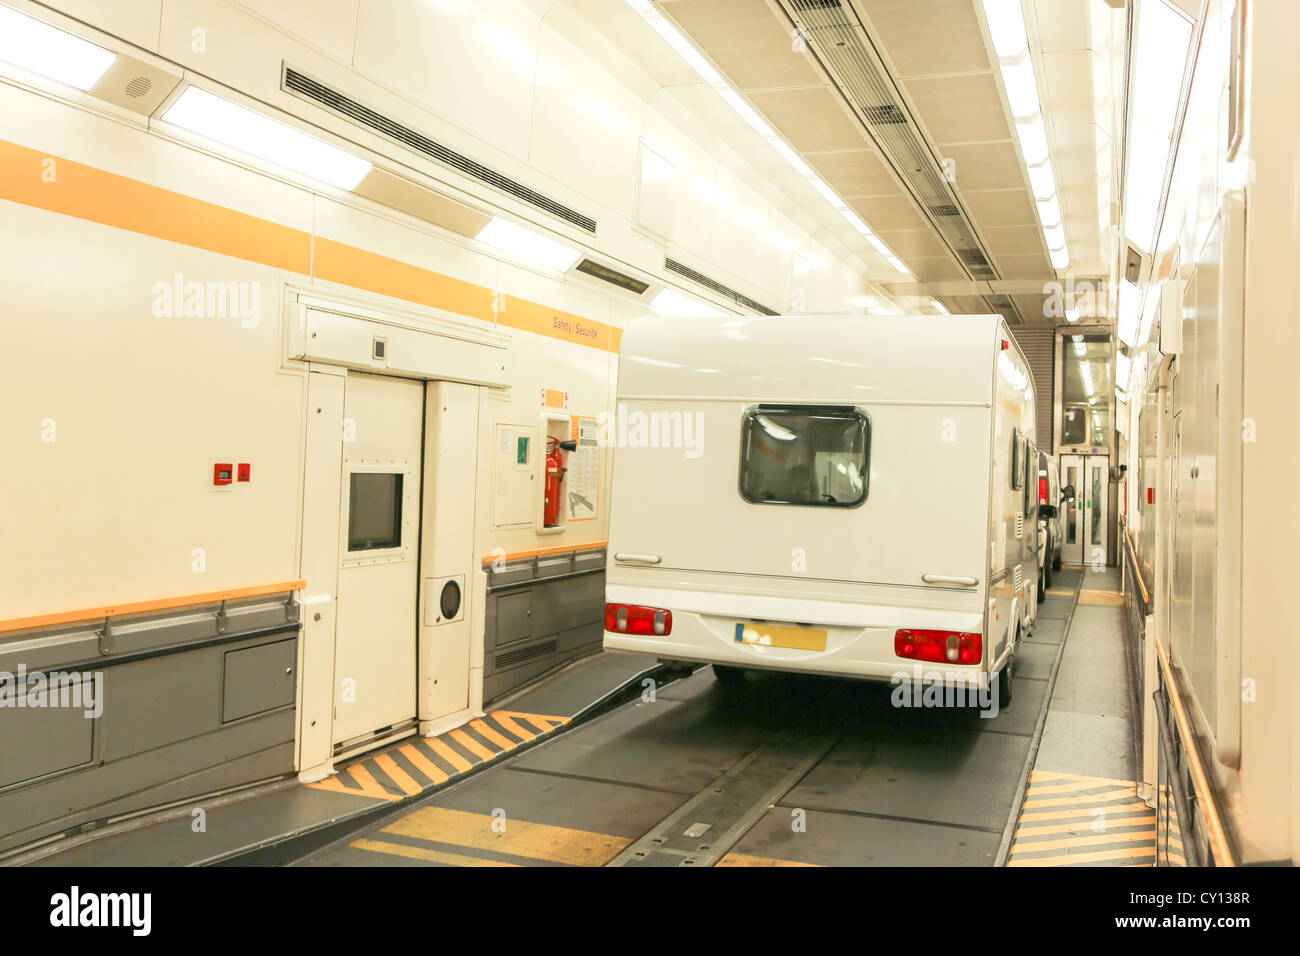 A Car And Trailer Caravan Inside A Train Carriage Of A Eurotunnel Le